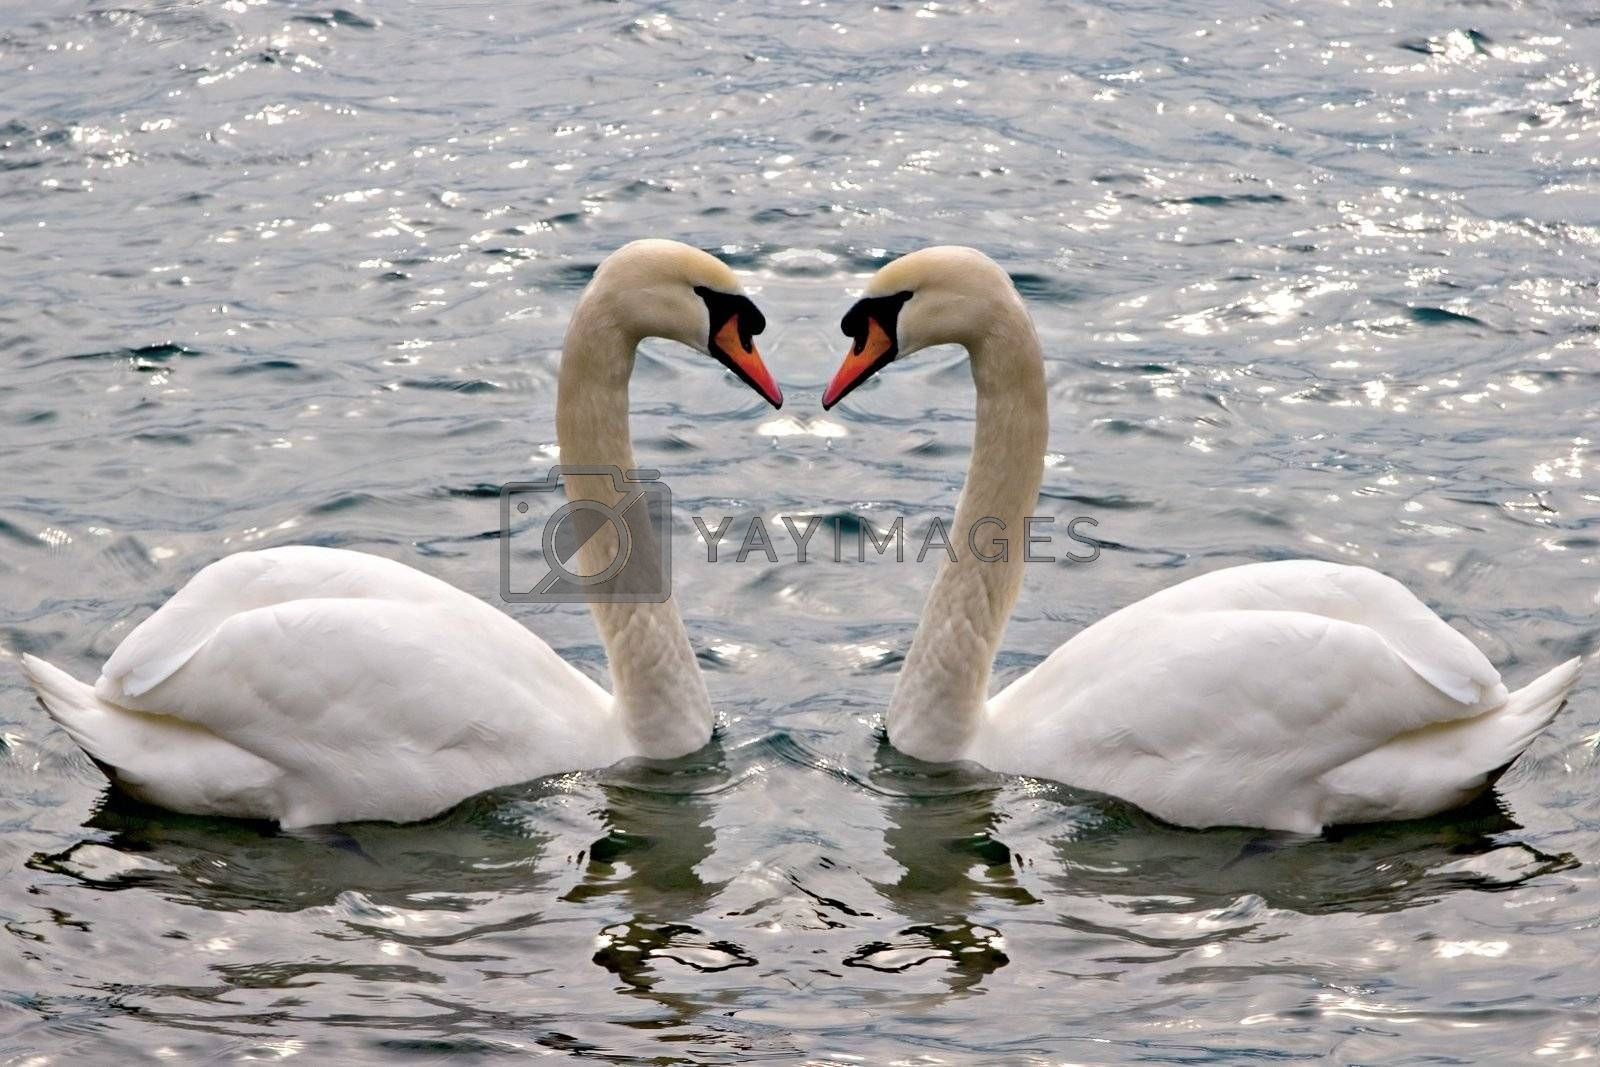 A couple of swans swimming. Concept: relationship / love.